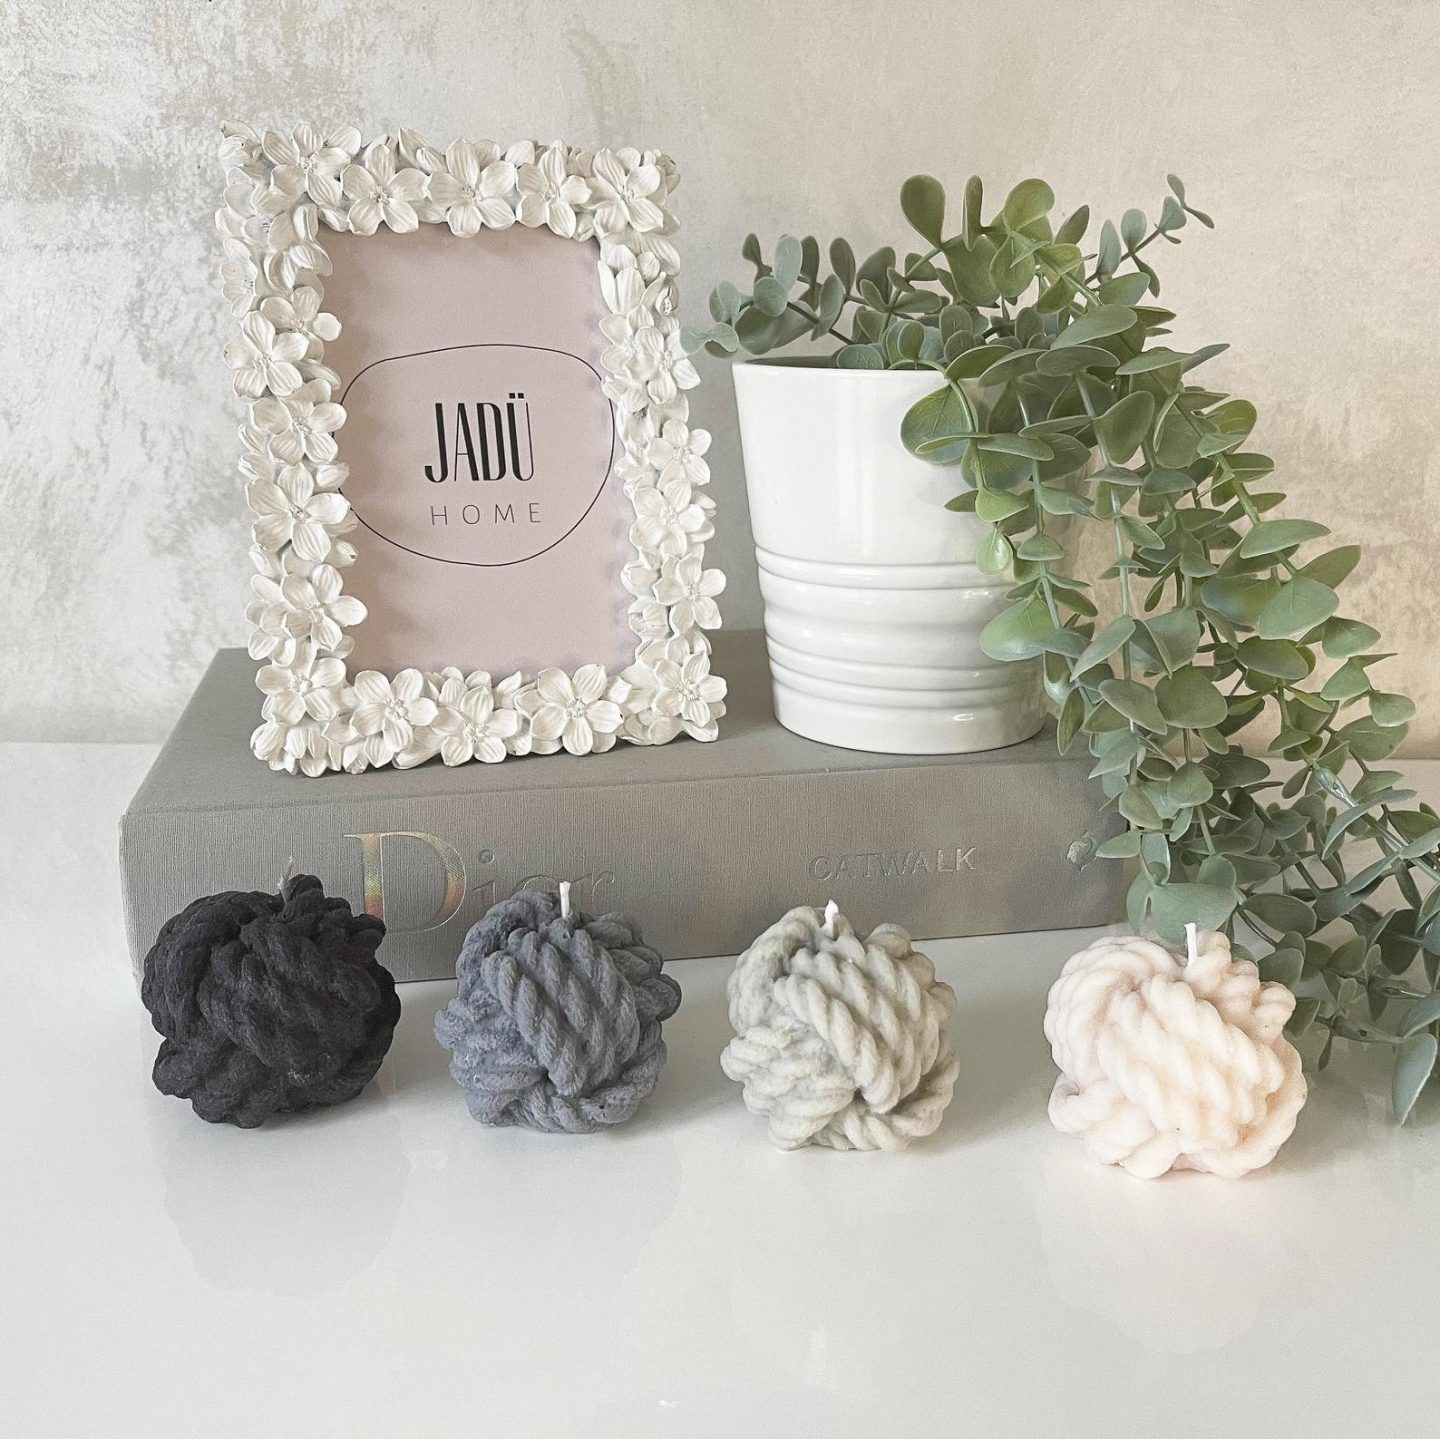 Cute small knot and rope candles